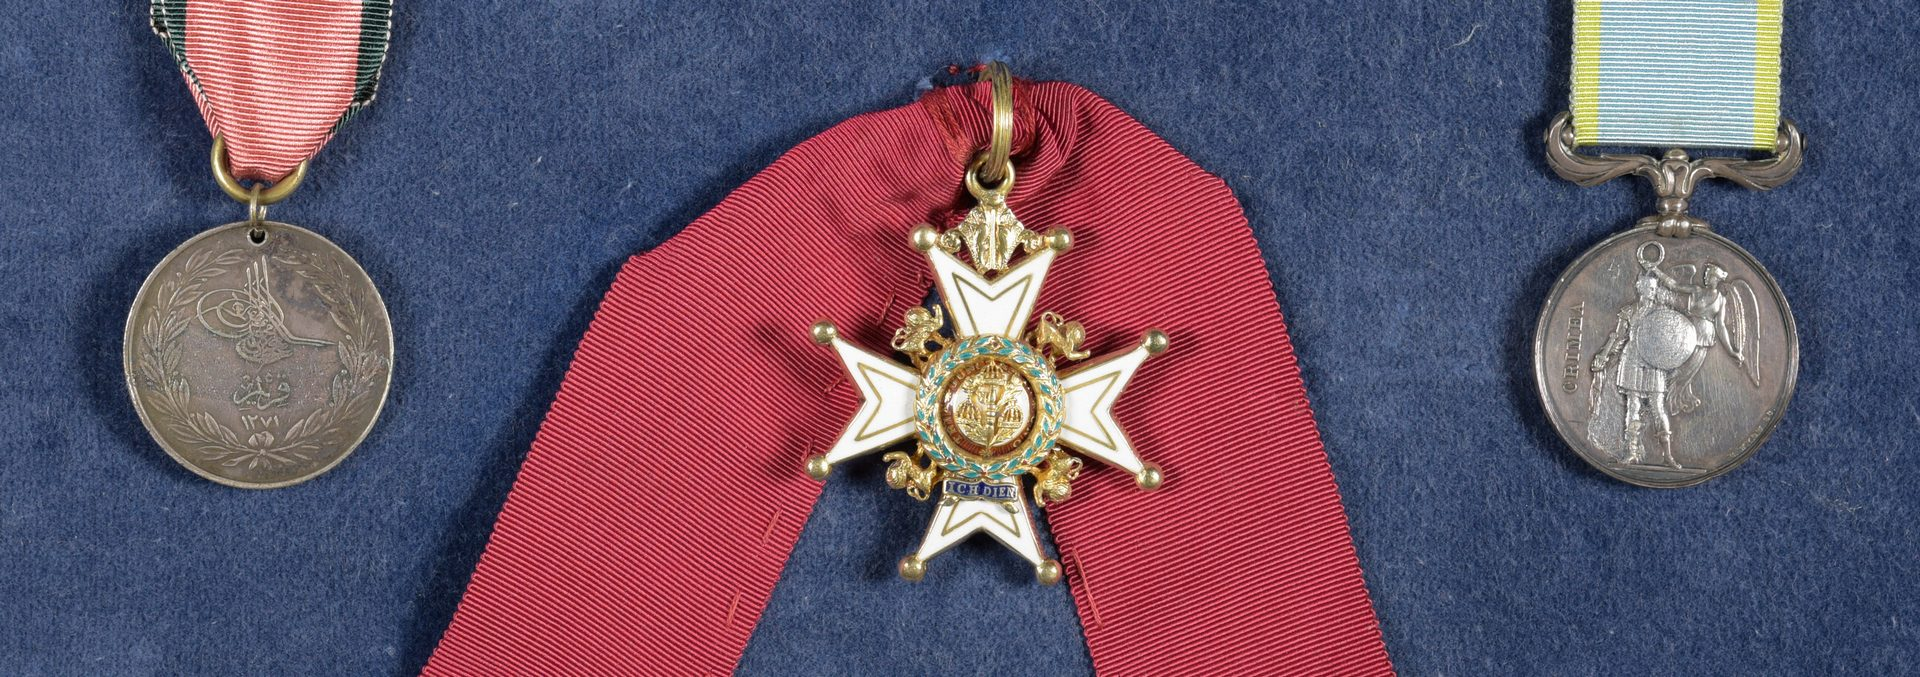 Lot 872: Order of the Bath Medal and Crimean War Archive